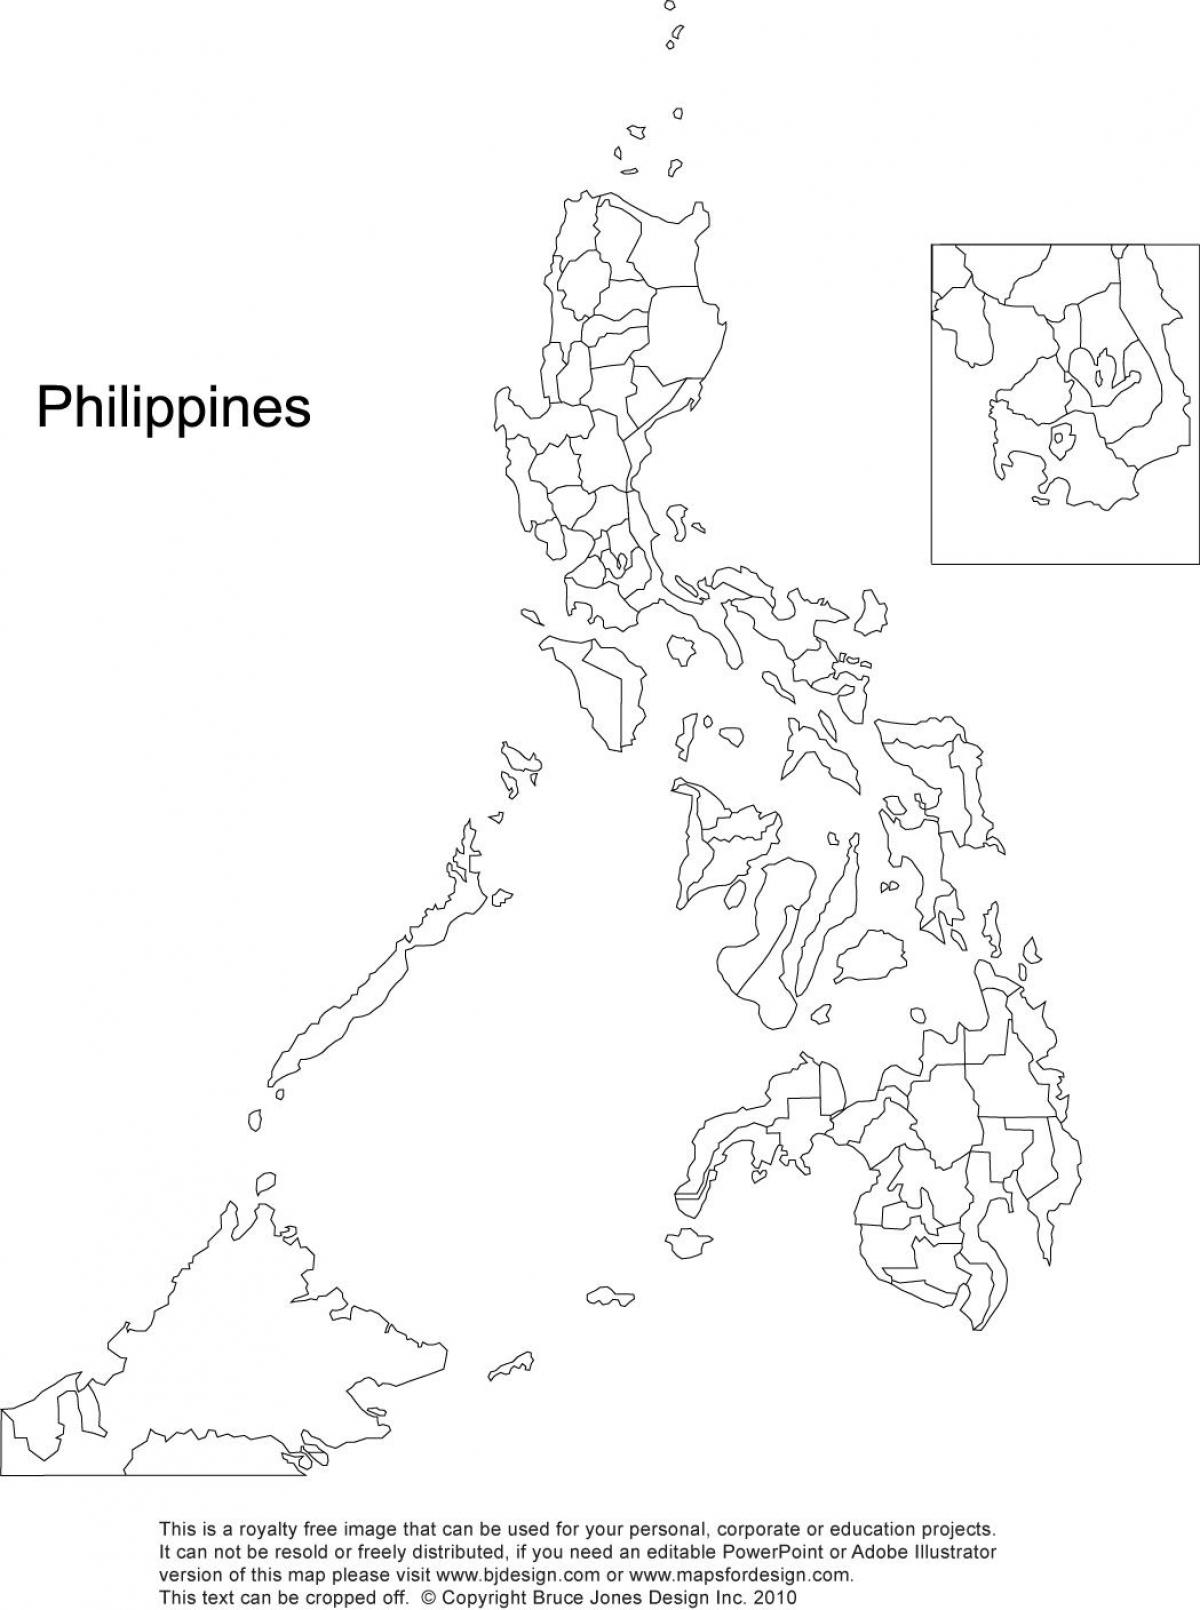 Philippines Map Drawing At Getdrawings